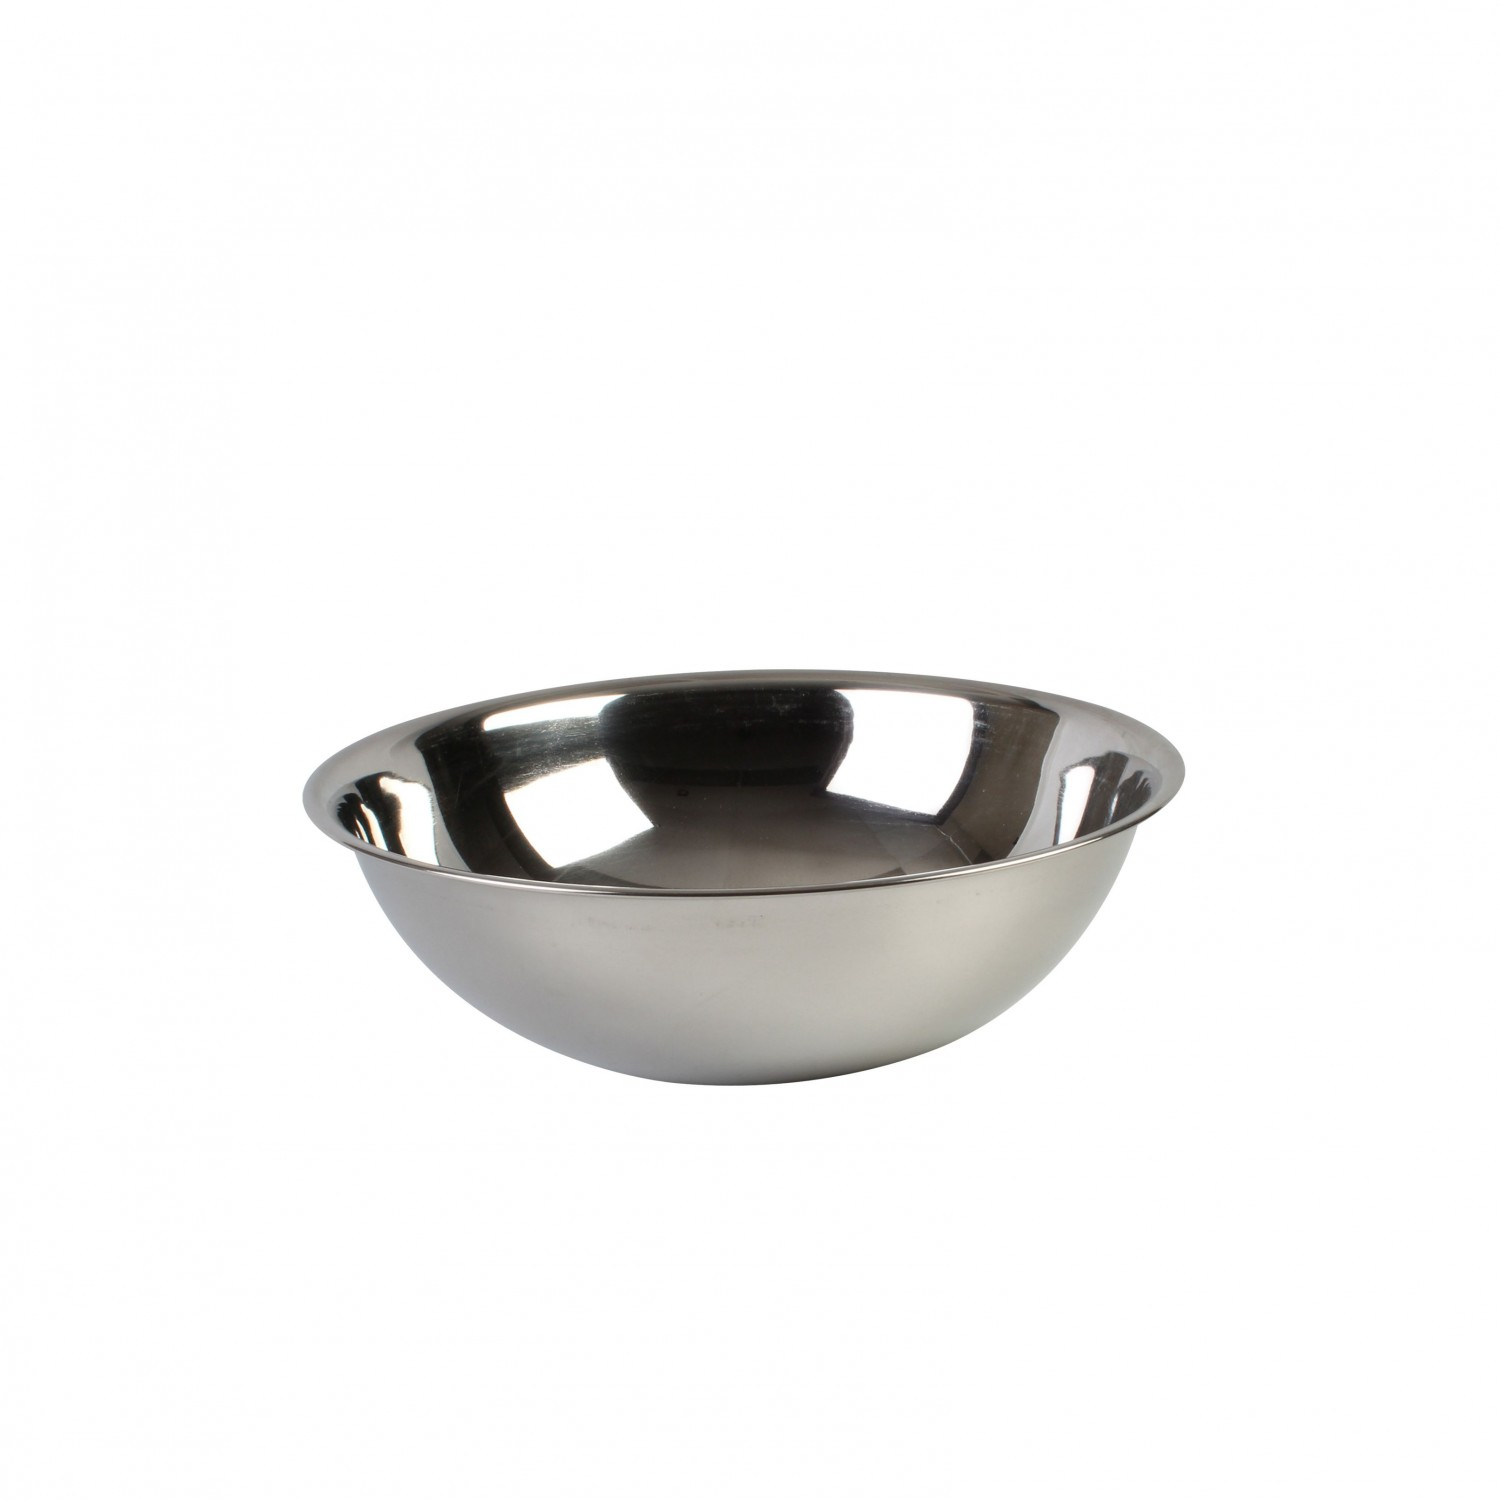 Thunder Group SLMB205 Heavy Duty Stainless Steel Mixing Bowl 5 Qt. - 1 doz